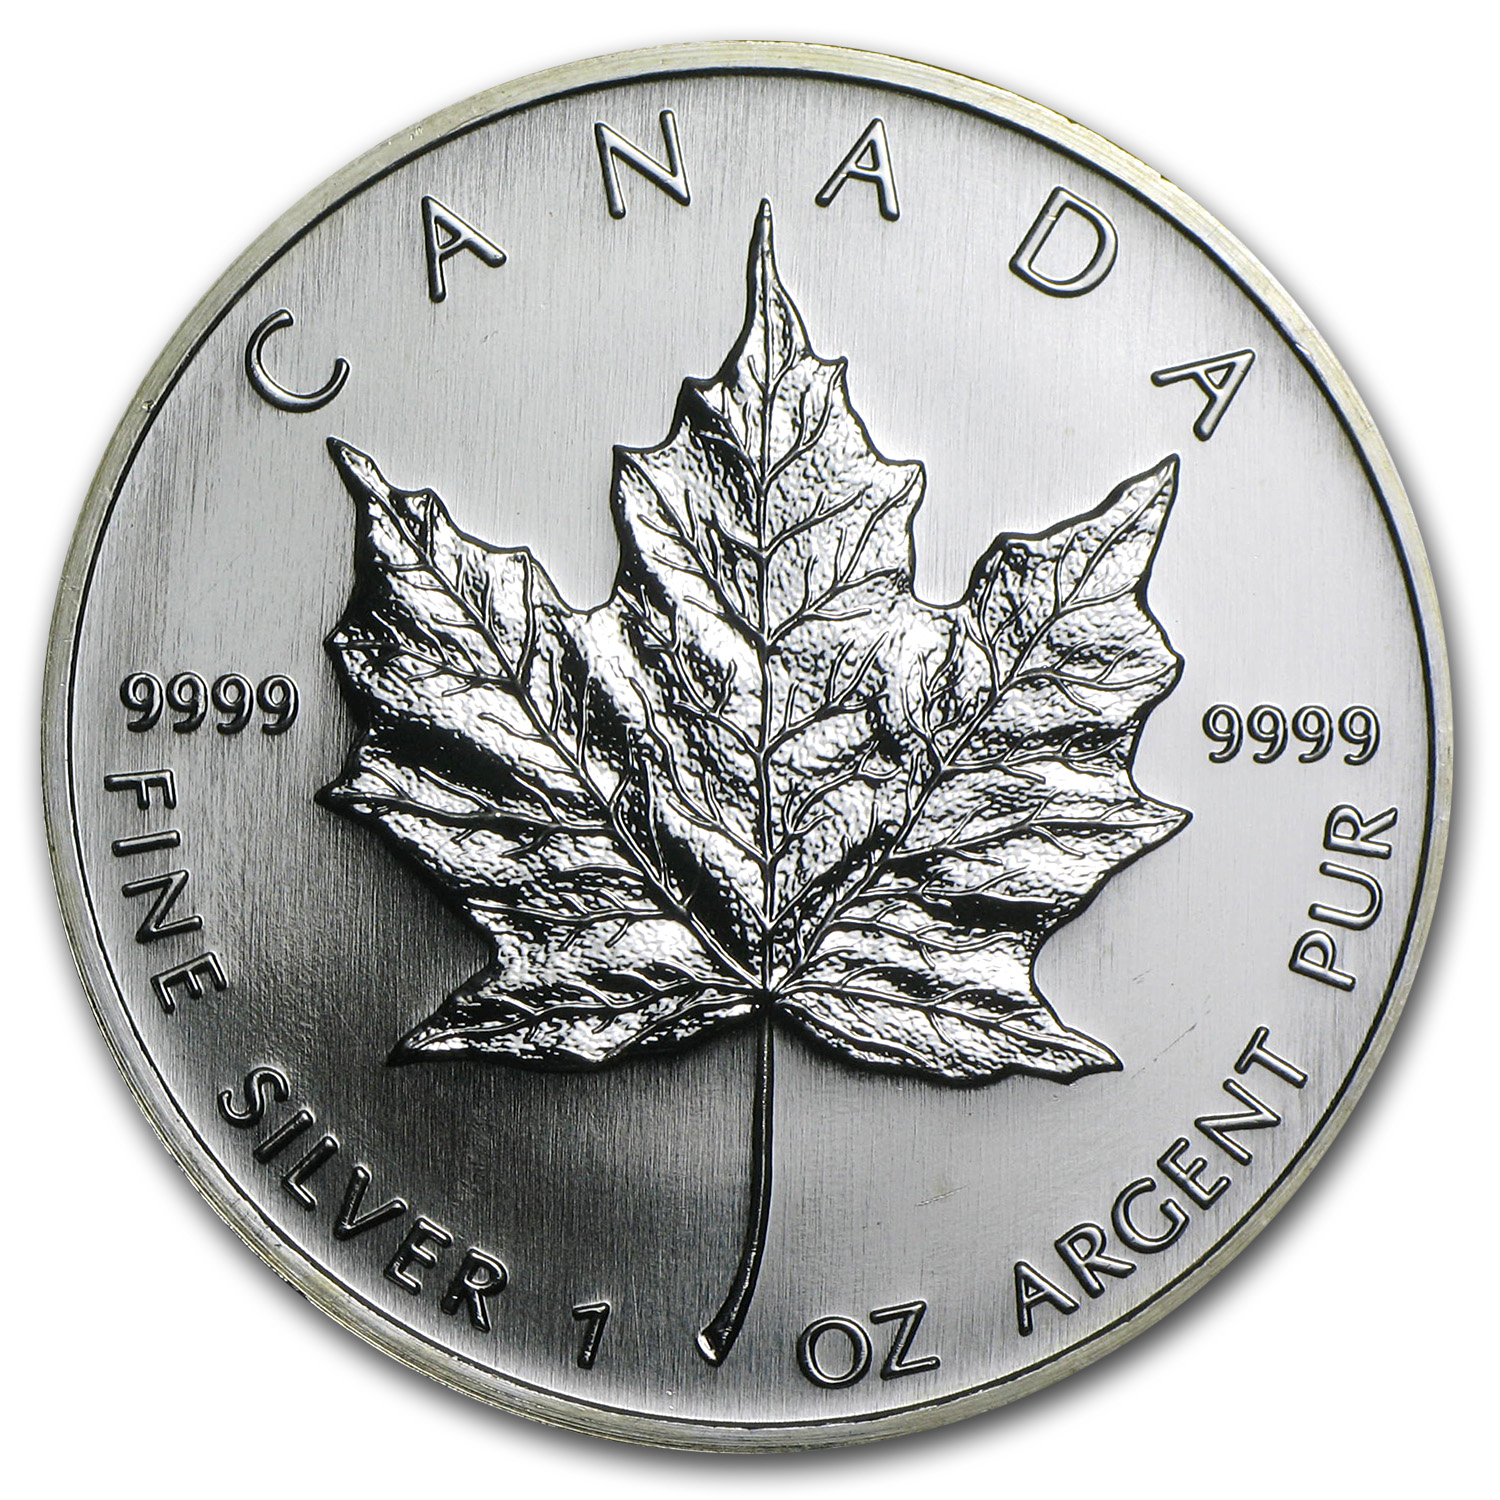 2006 1 oz Silver Canadian Maple Leaf BU